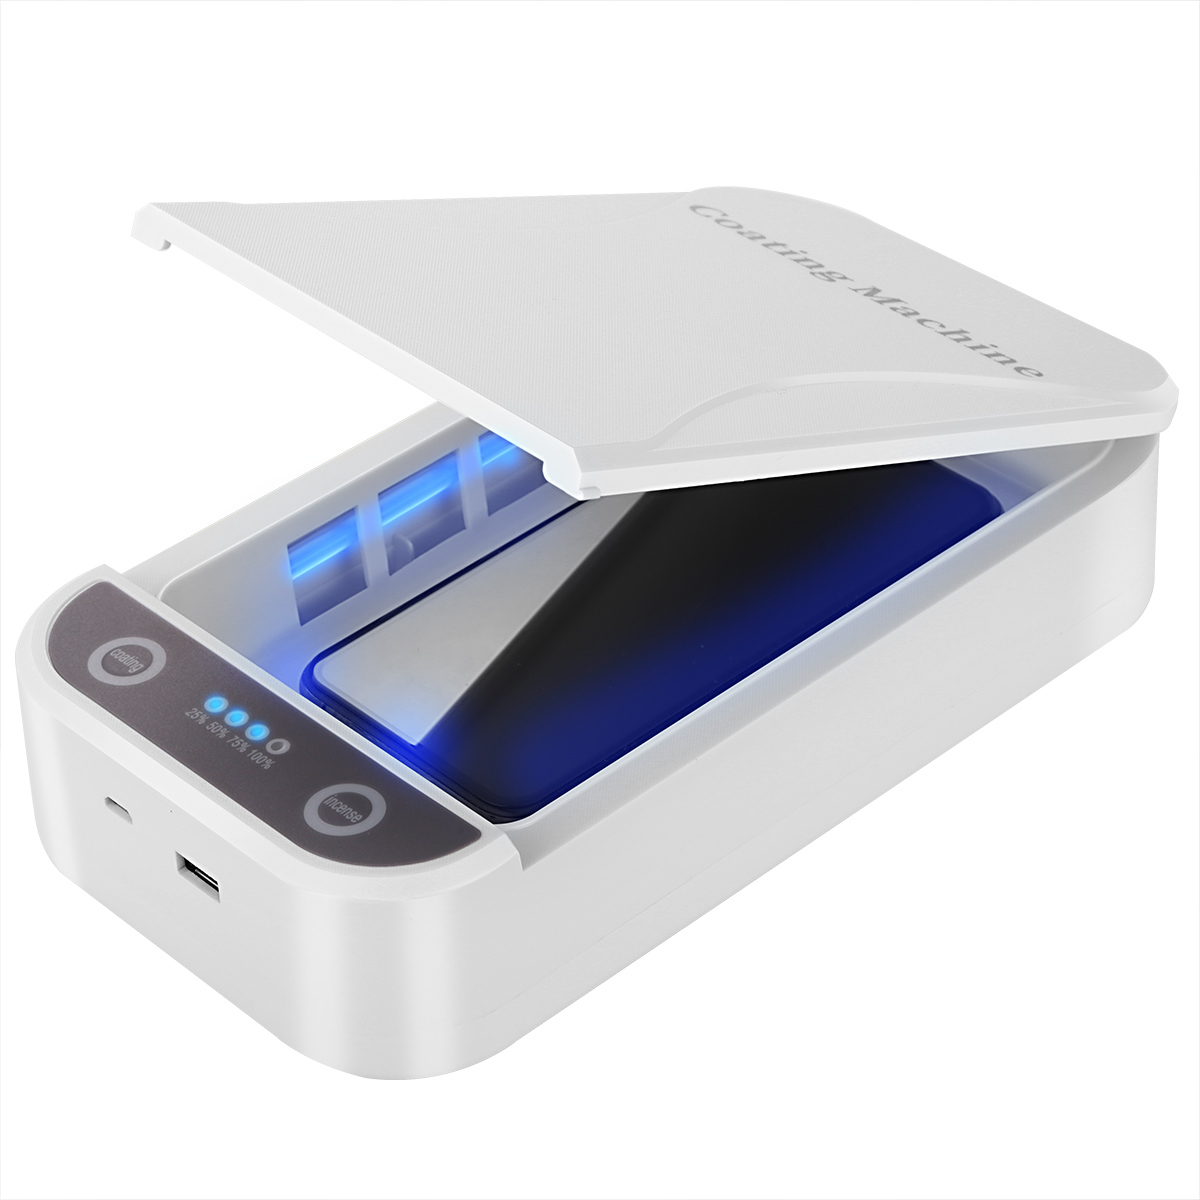 Portable UV Sterilizer Cellphone Toothbrush Sanitizer Disinfection Box with USB Cable Dual UV Lights image